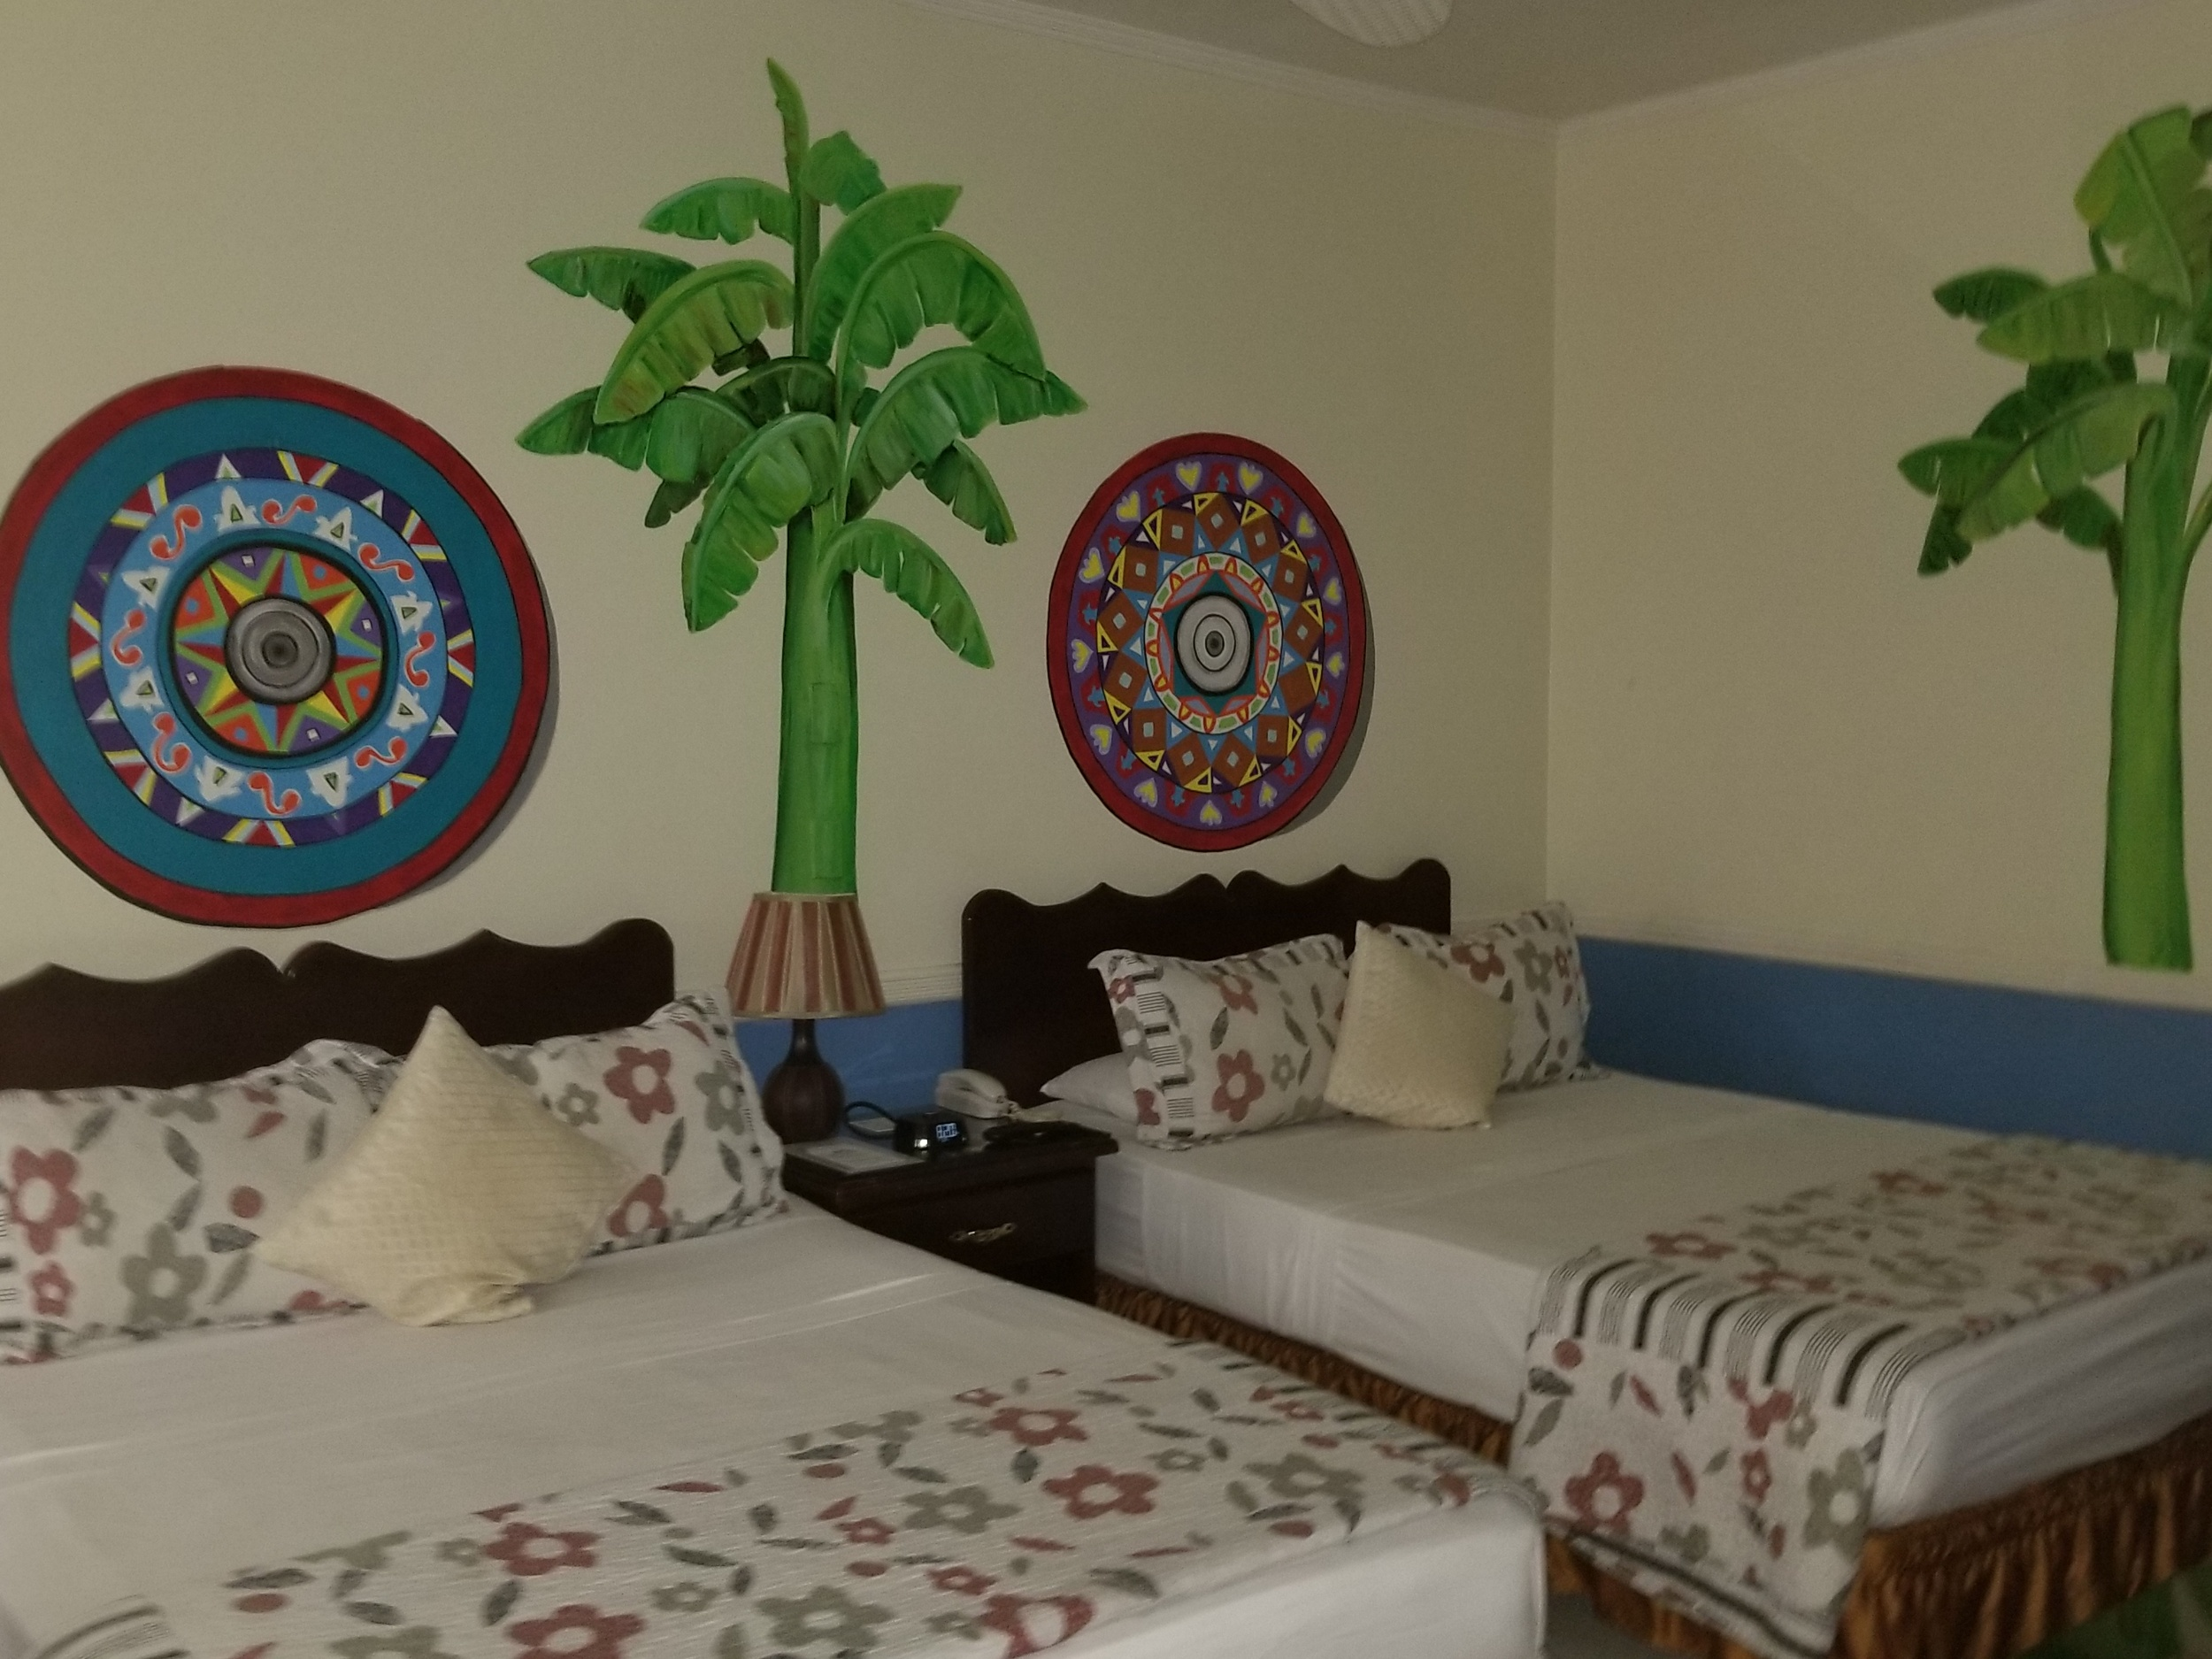 One of the Bedrooms here. They all have beautiful paintings on the wall.